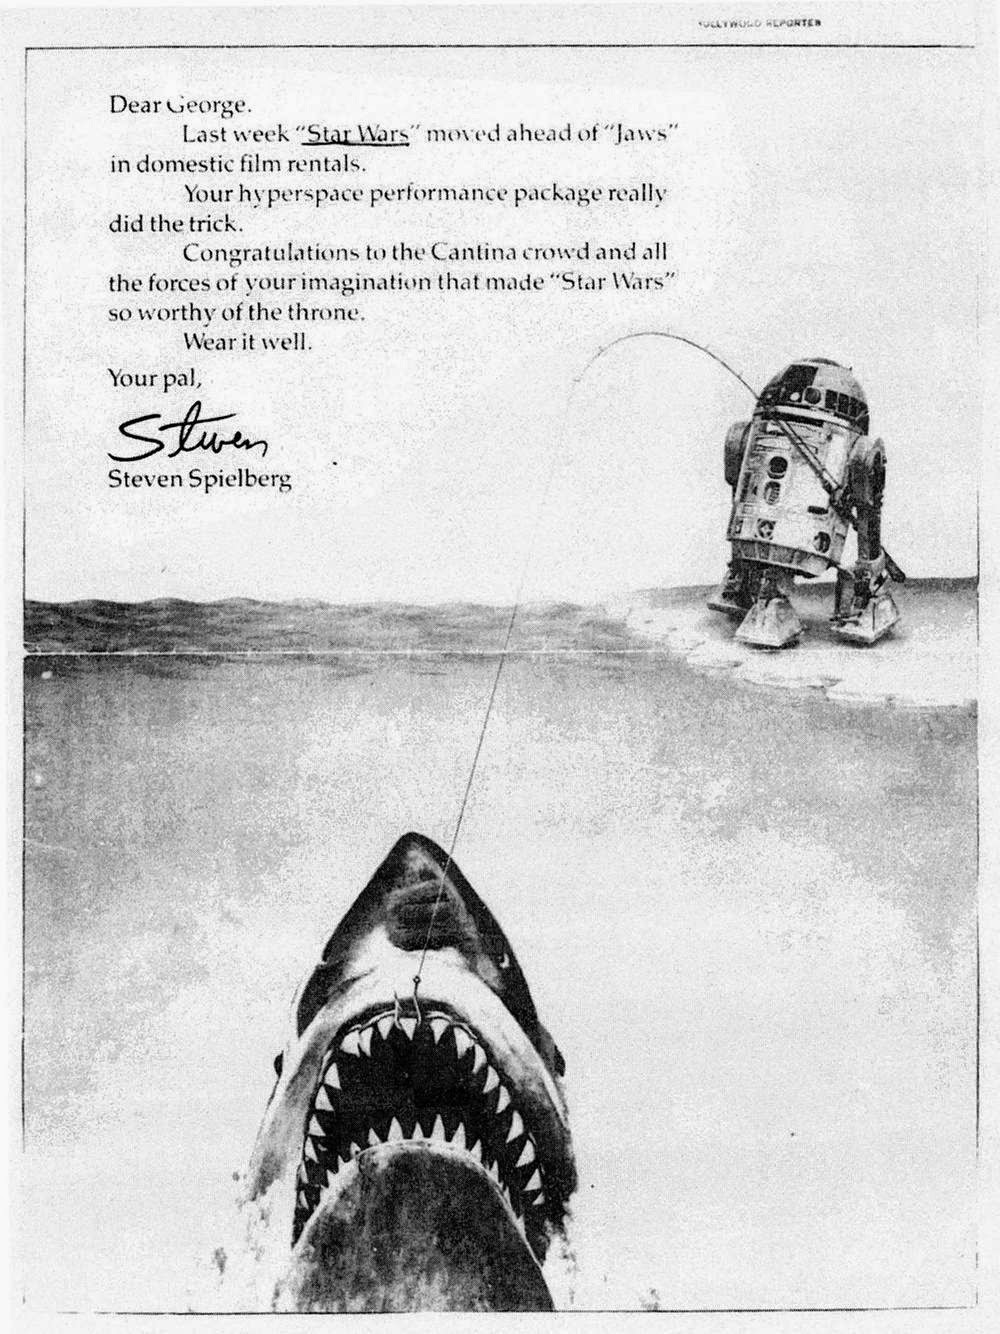 Creative congratulatory note from Steven Spielberg to George Lucas over Star Wars rentals success beating Jaws in the records